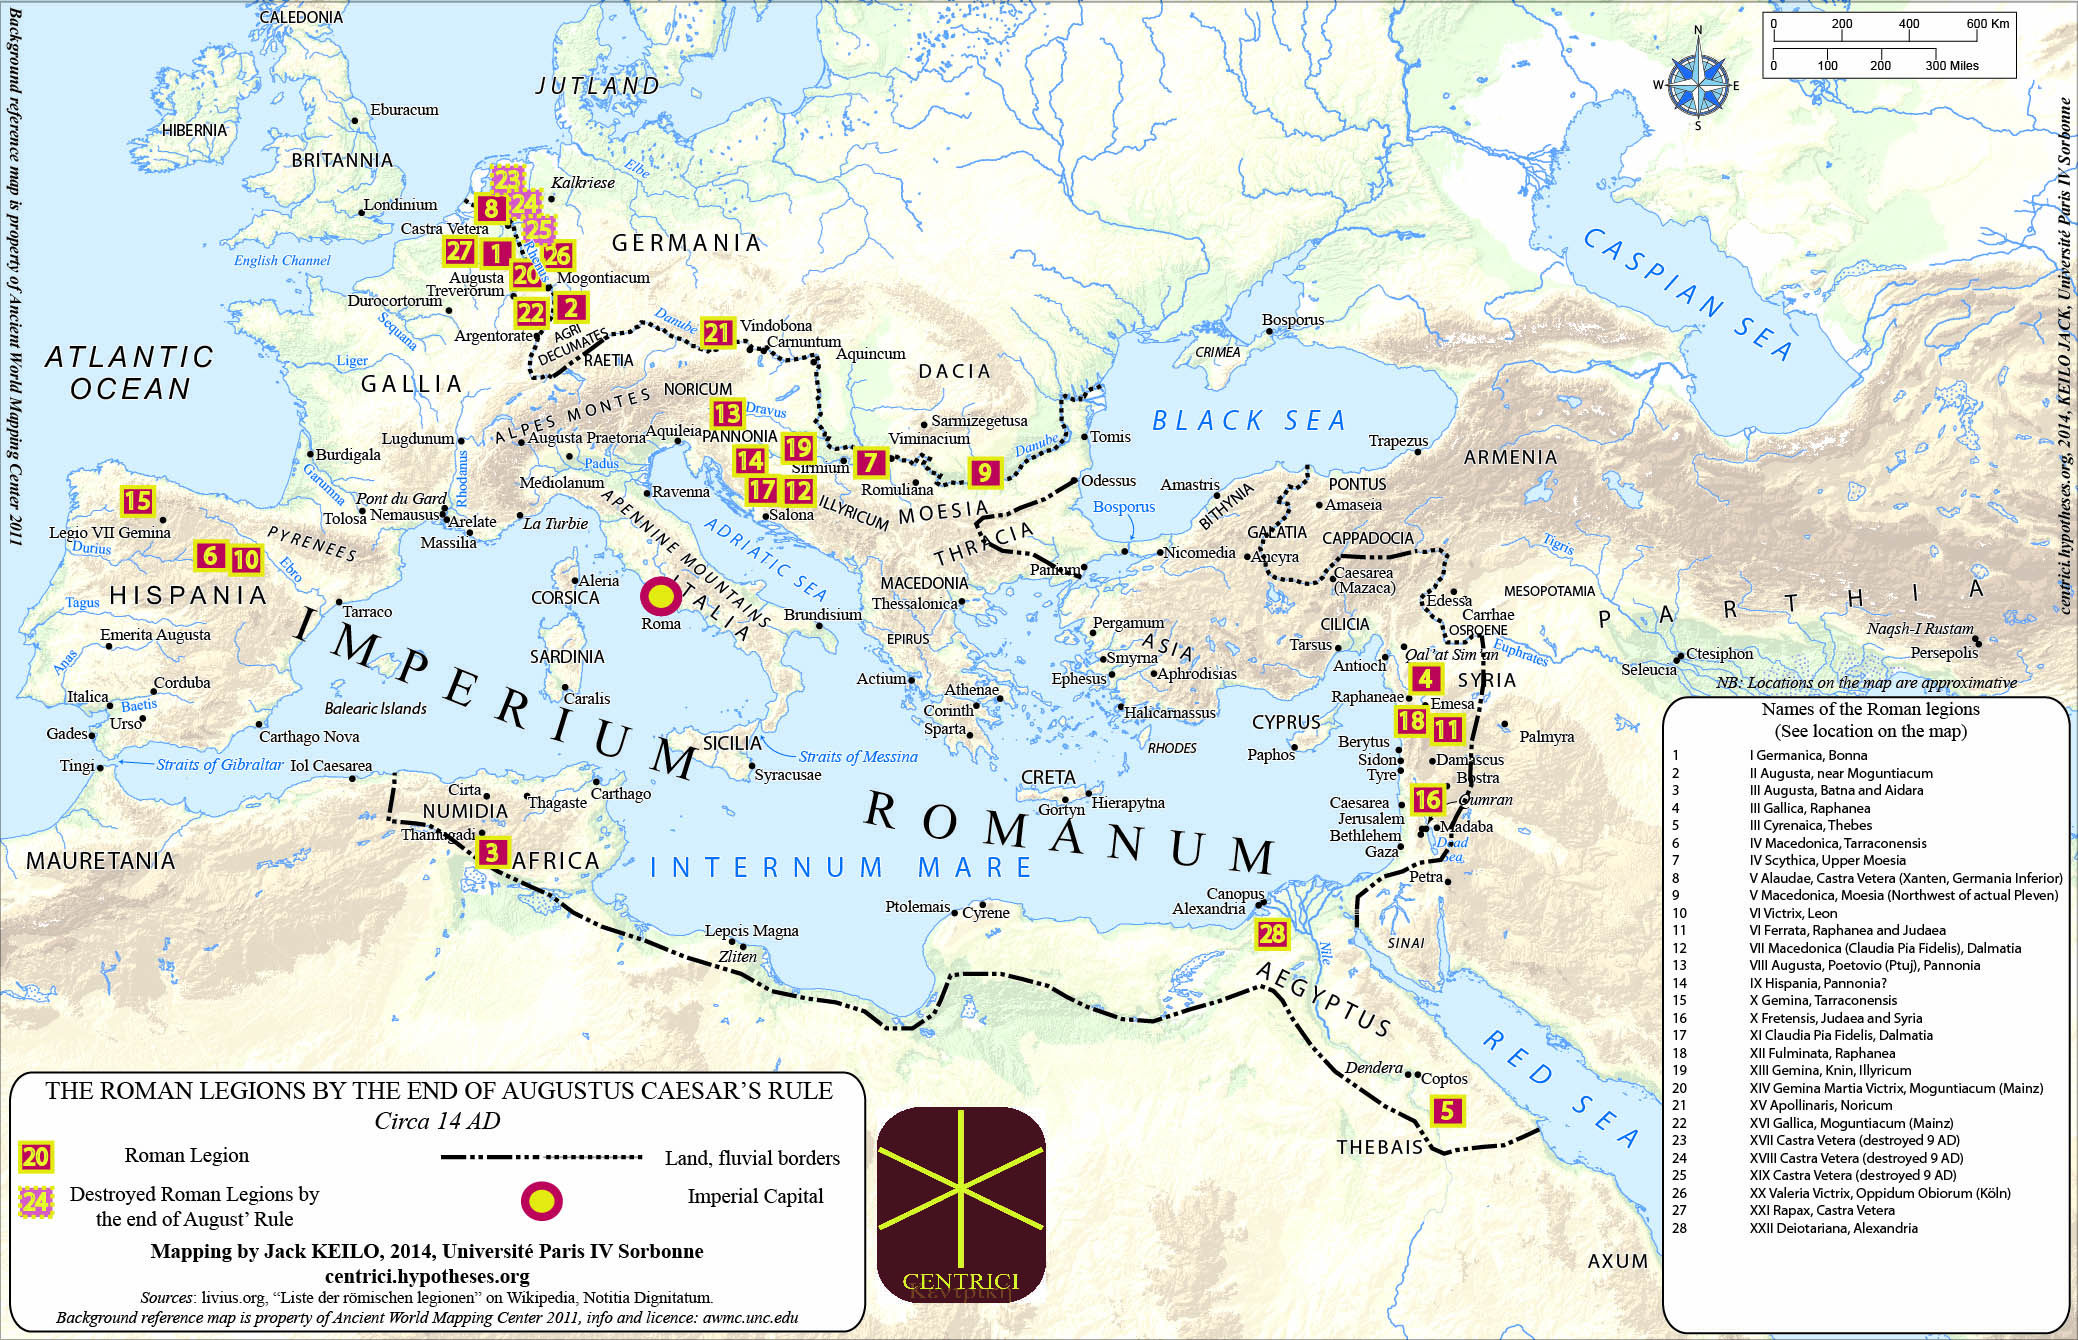 Mapping roman legions how limits tell about the centre mapping roman legions how limits tell about the centre biocorpaavc